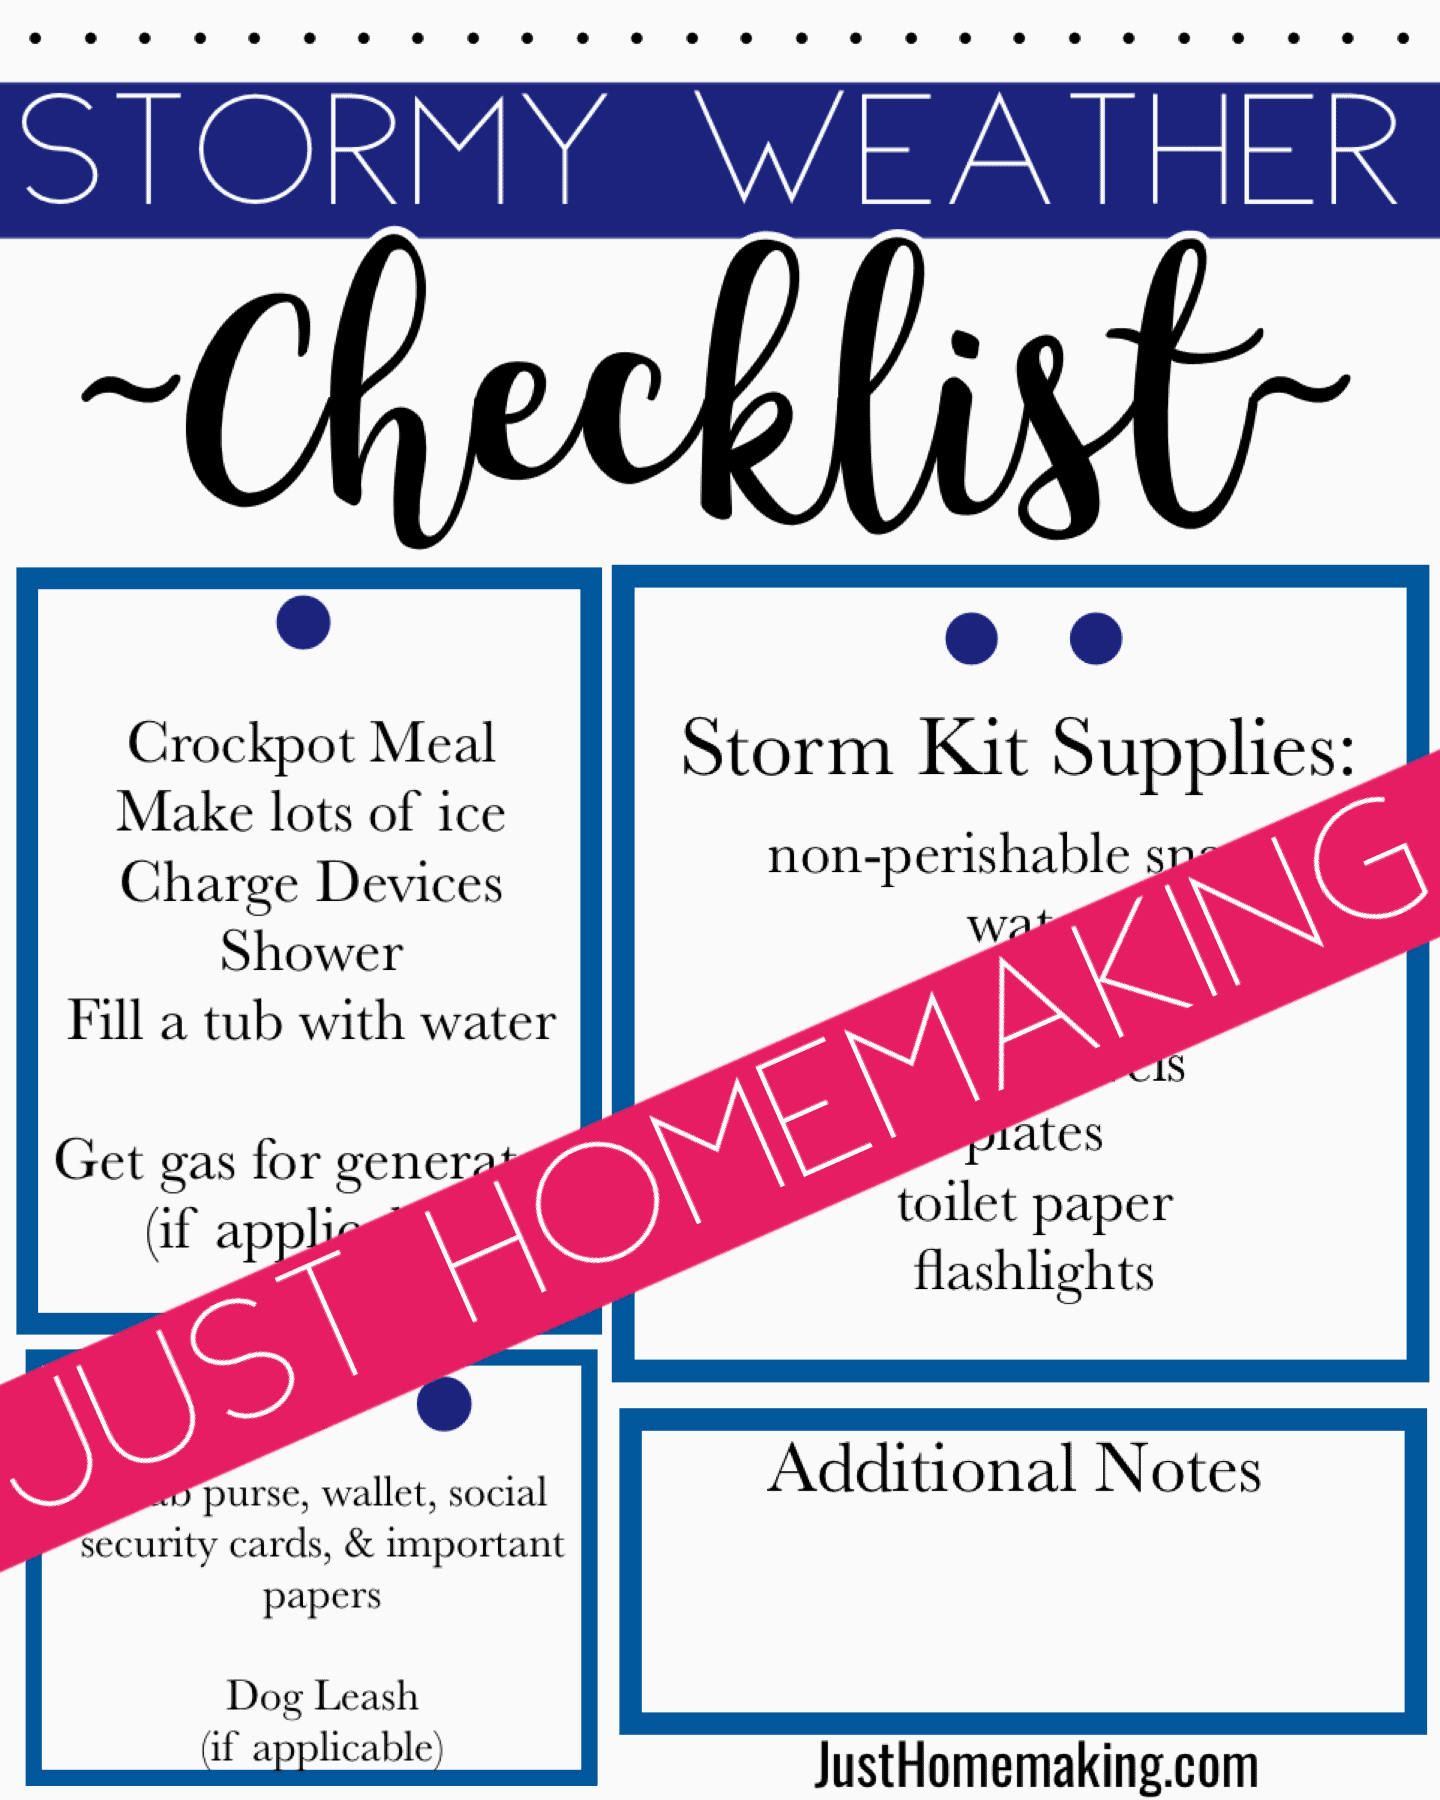 Storm Readiness Checklist